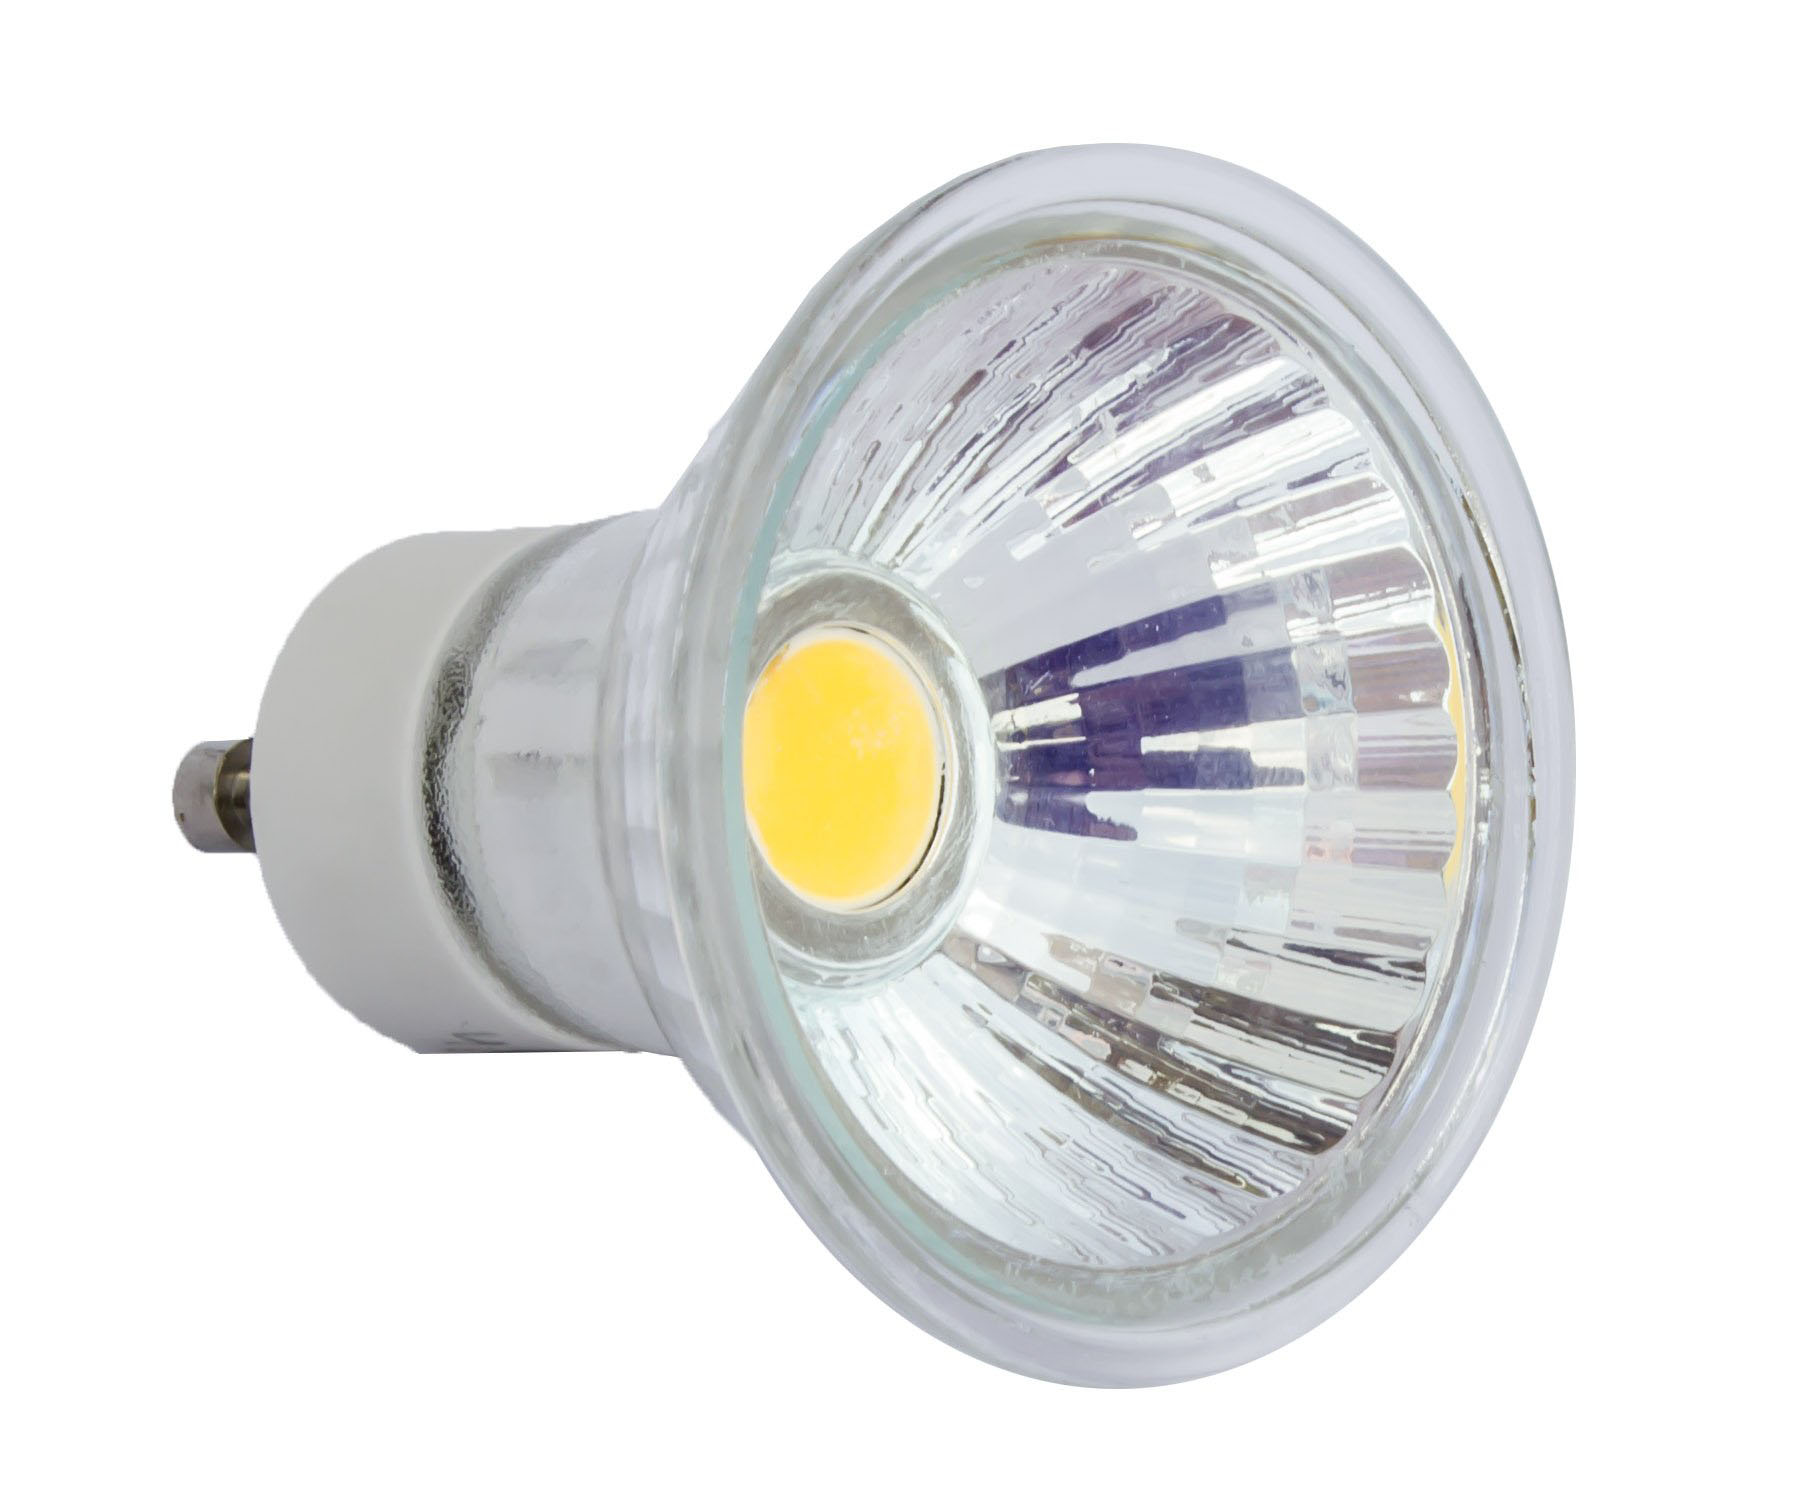 led 5 watt 400 lumen cob gu10 warmwei - Led Lampen Ewatt